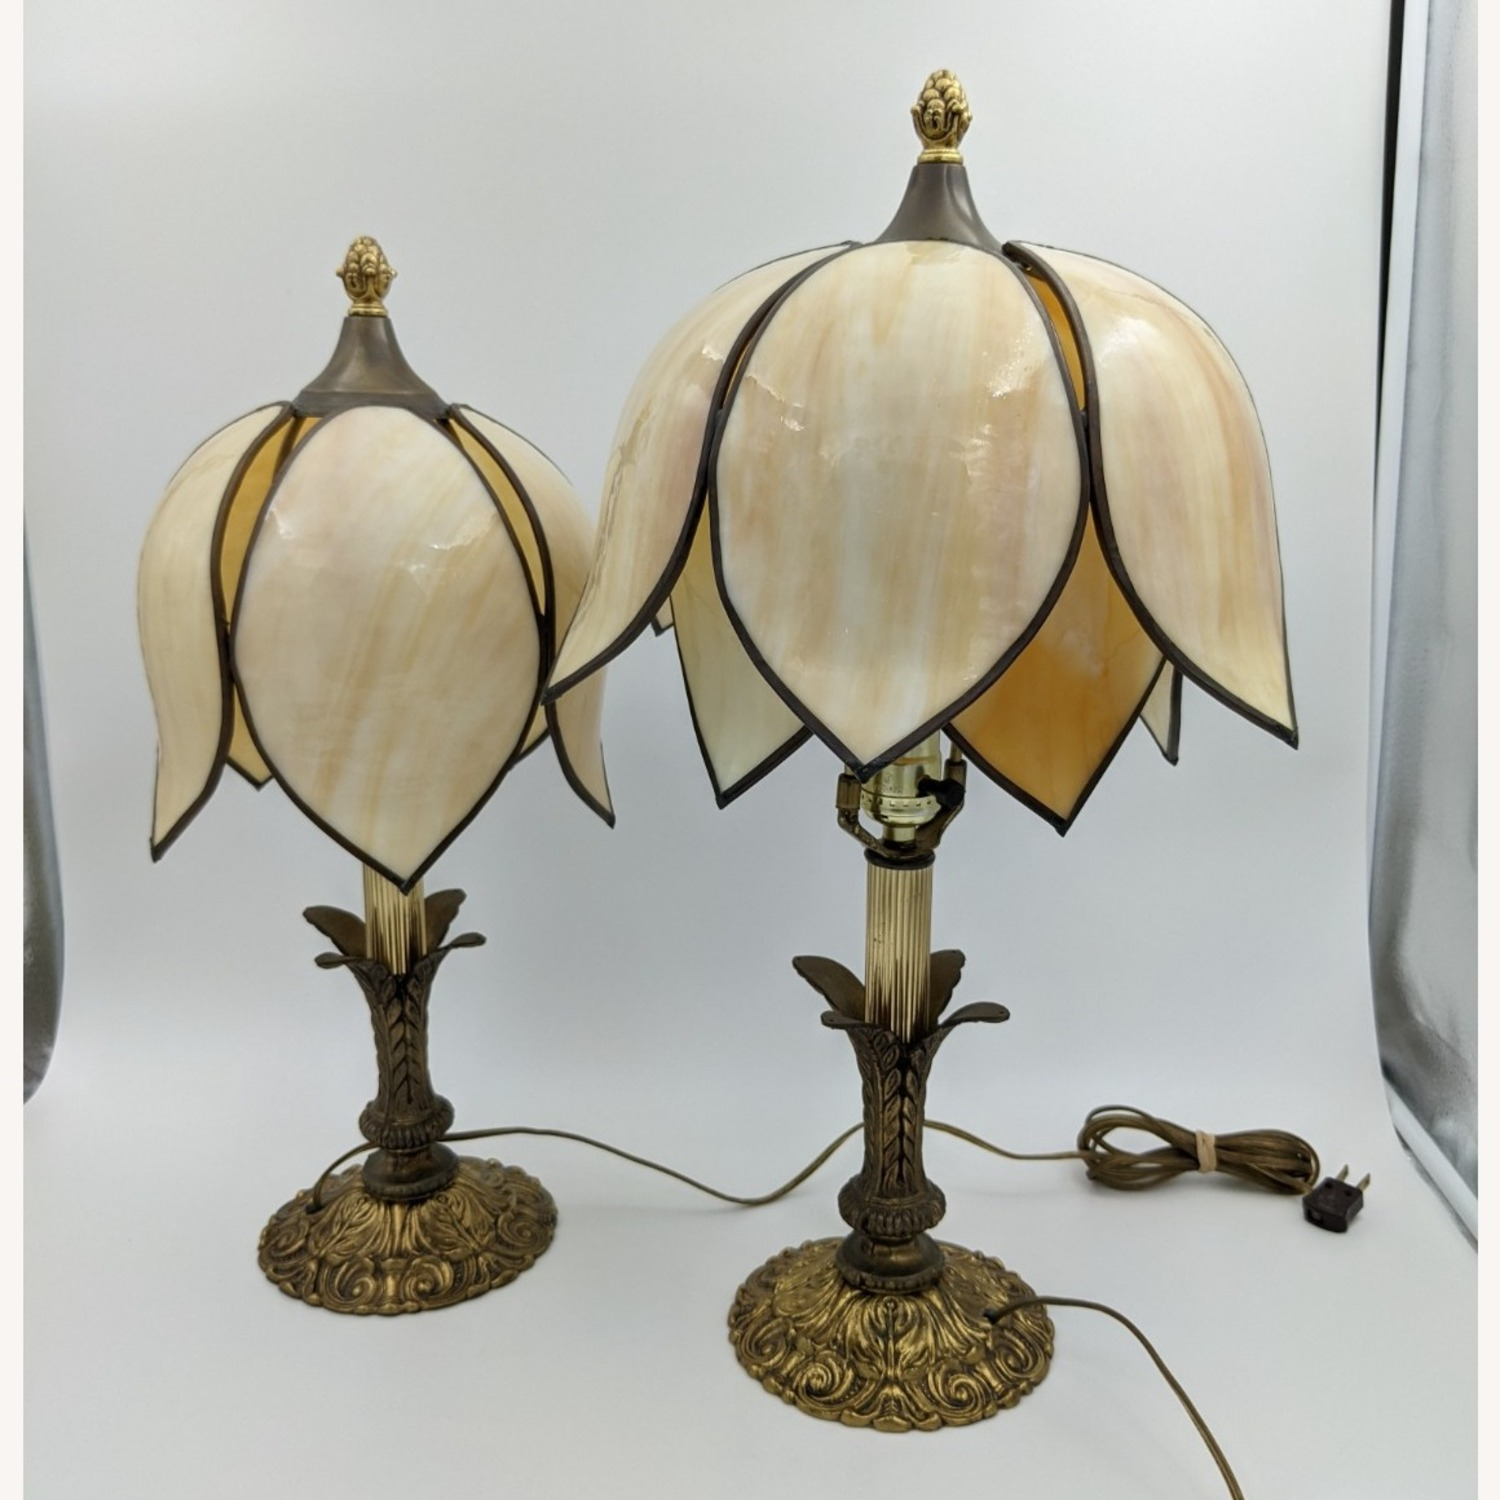 Set of 1920s Tulip Table Lamps - Slag Glass - image-6